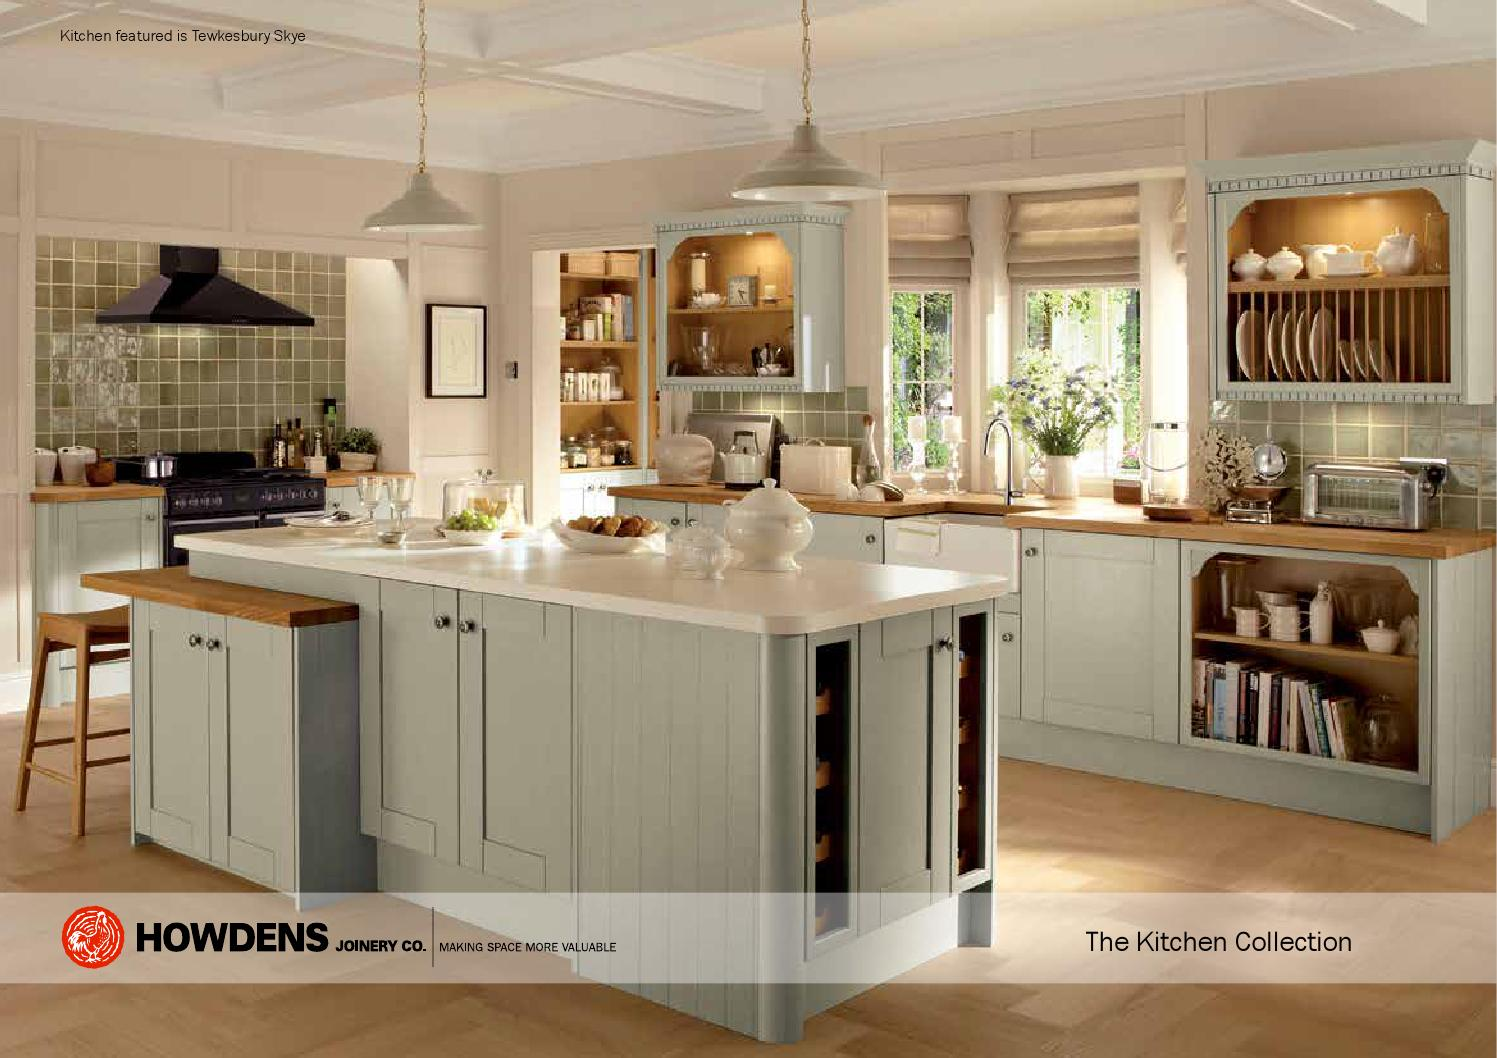 Kitchen collection brochure by steven123456 issuu for Kitchen ideas howdens